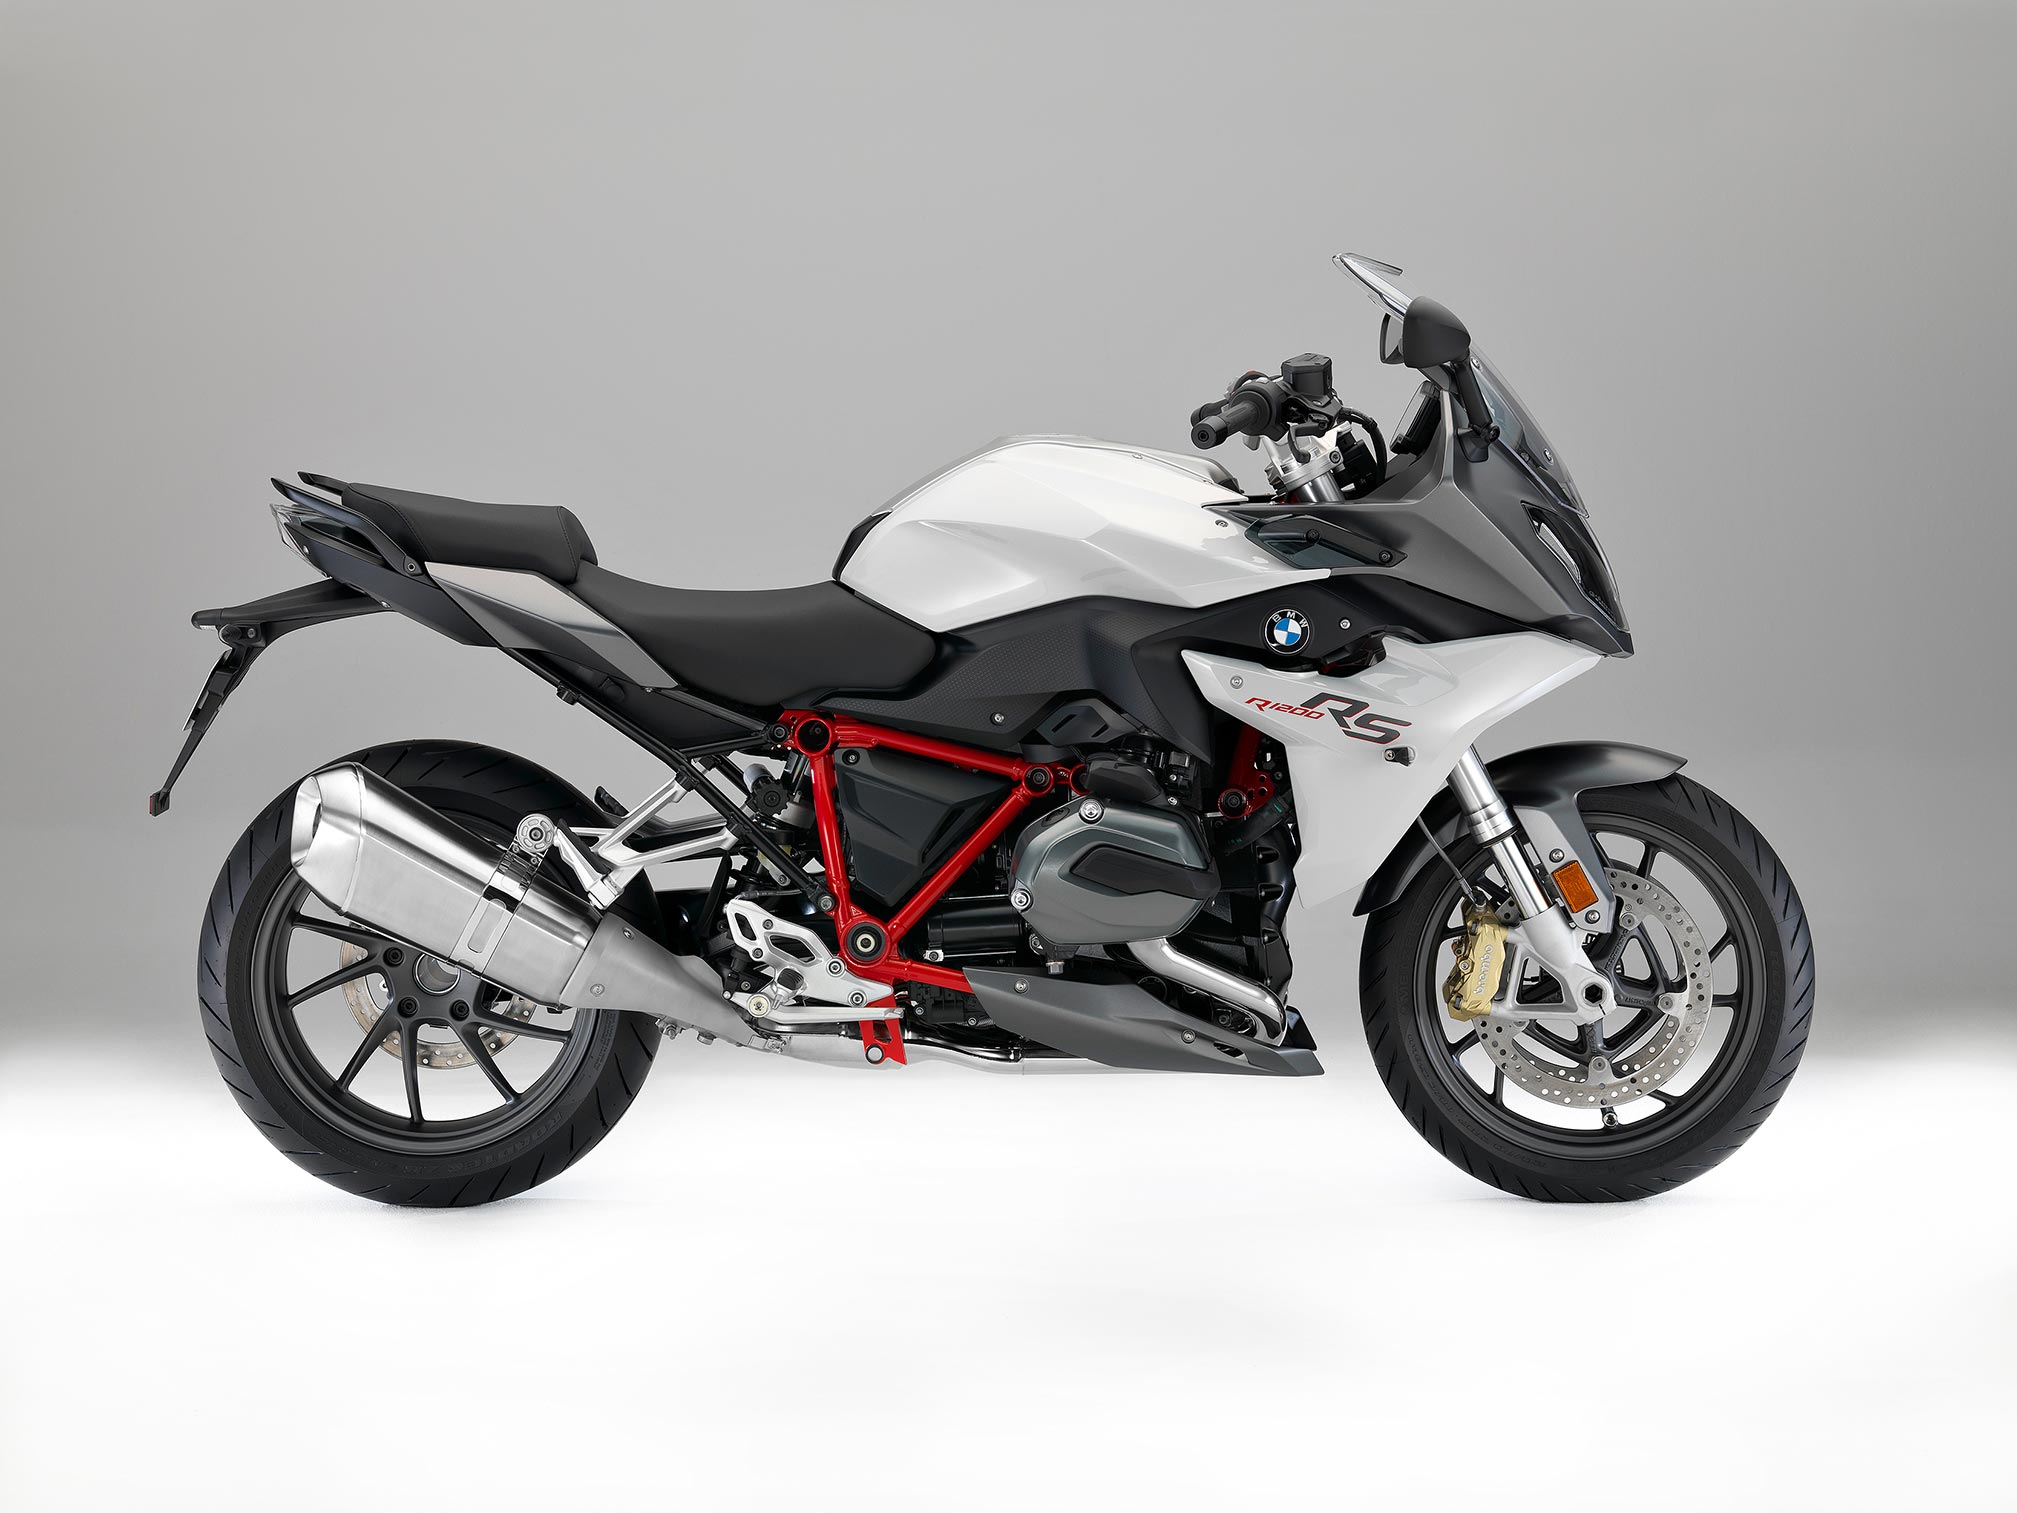 2017 BMW R1200RS Review